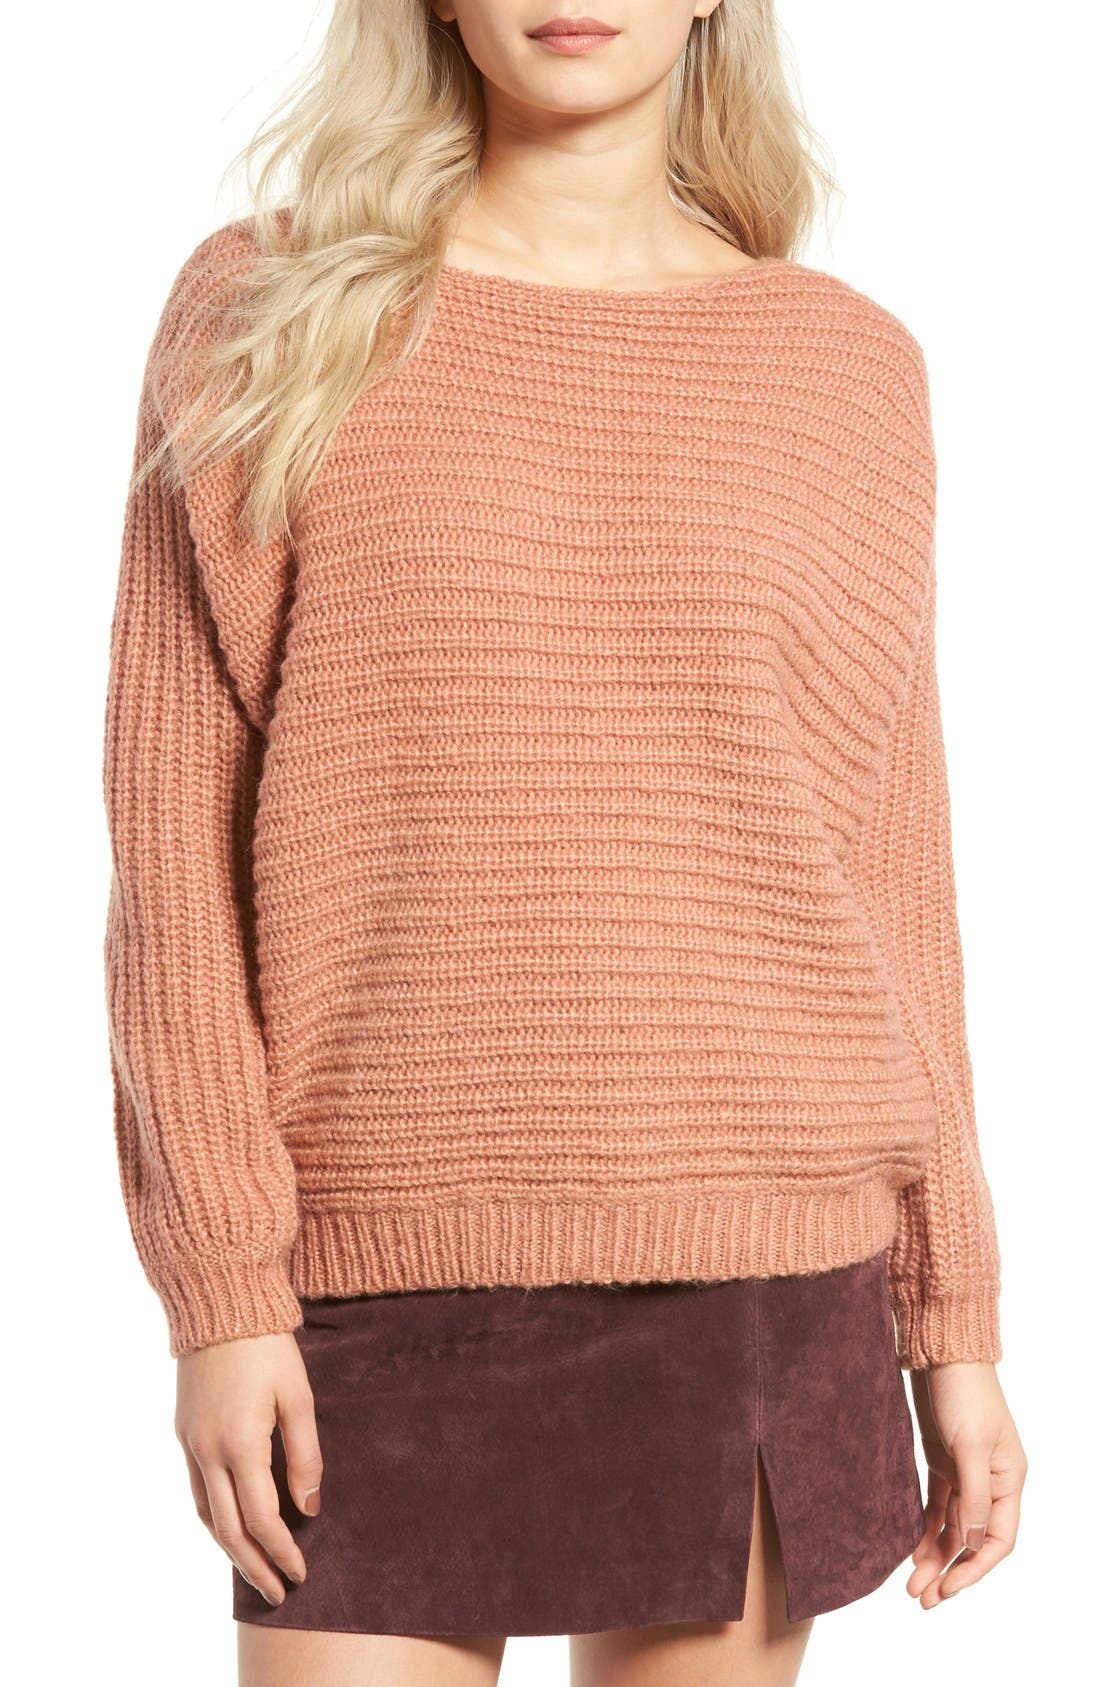 Main Image - Glamorous Open Back Boyfriend Sweater